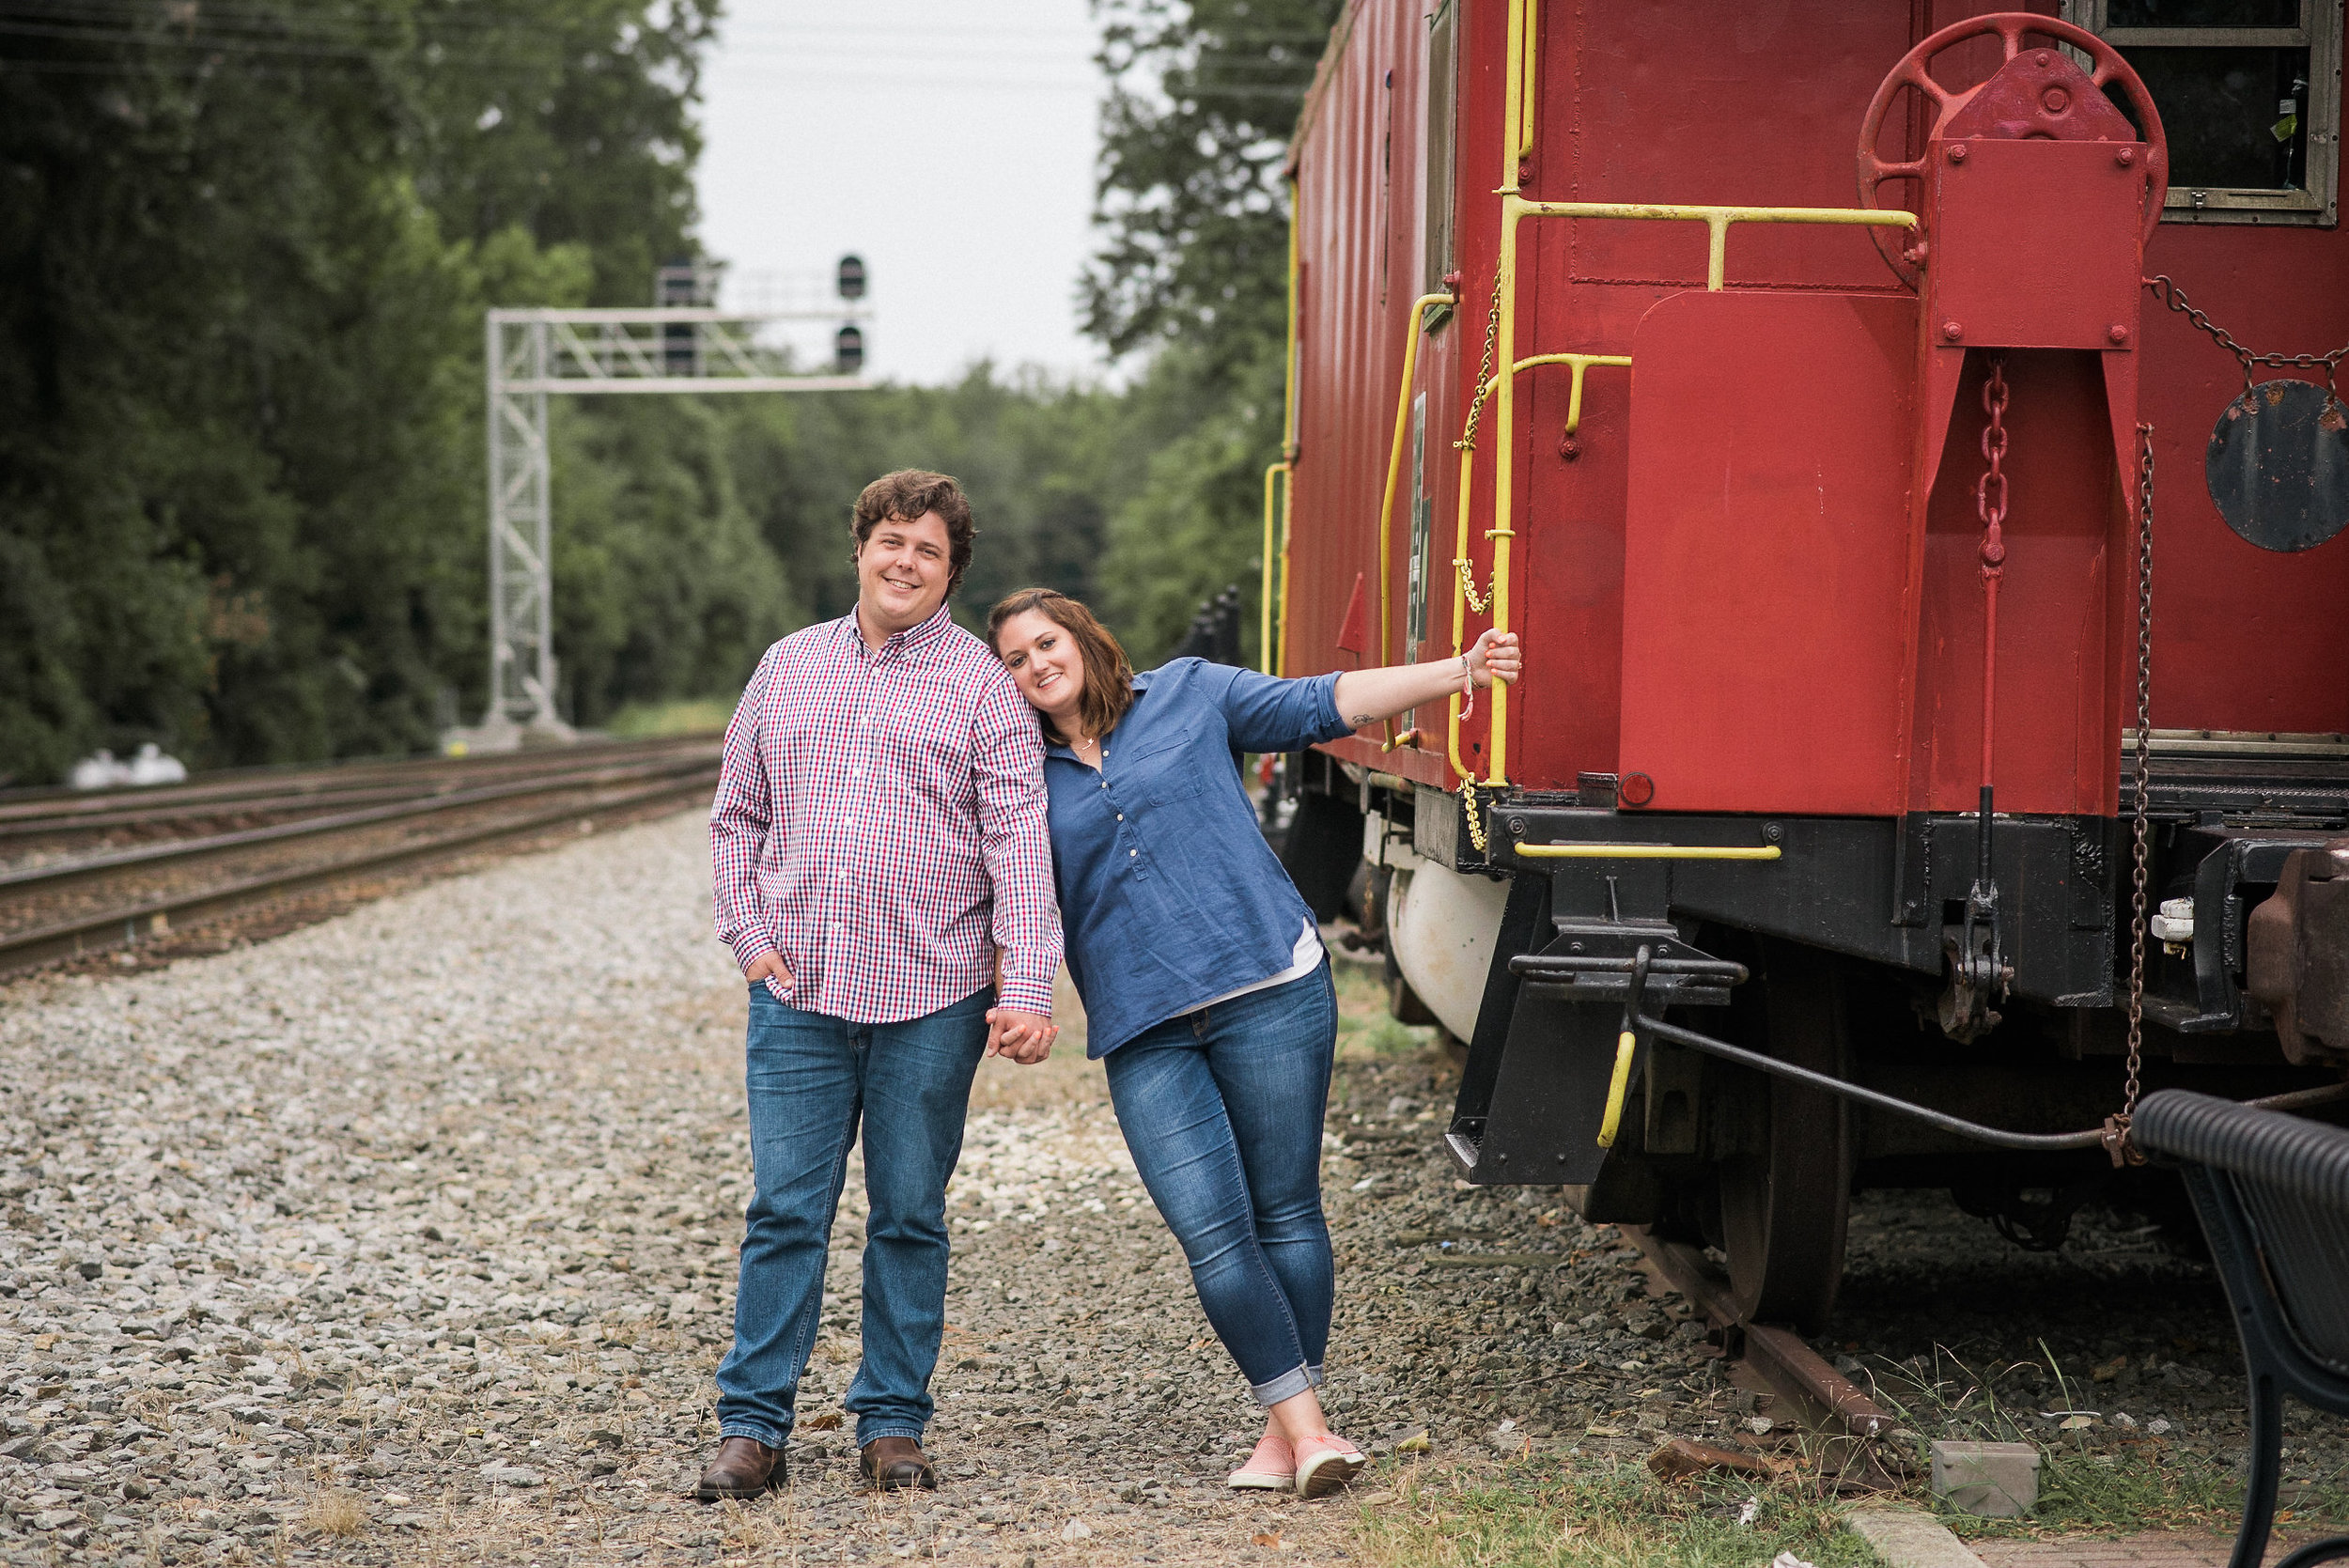 Man and woman next to rail car